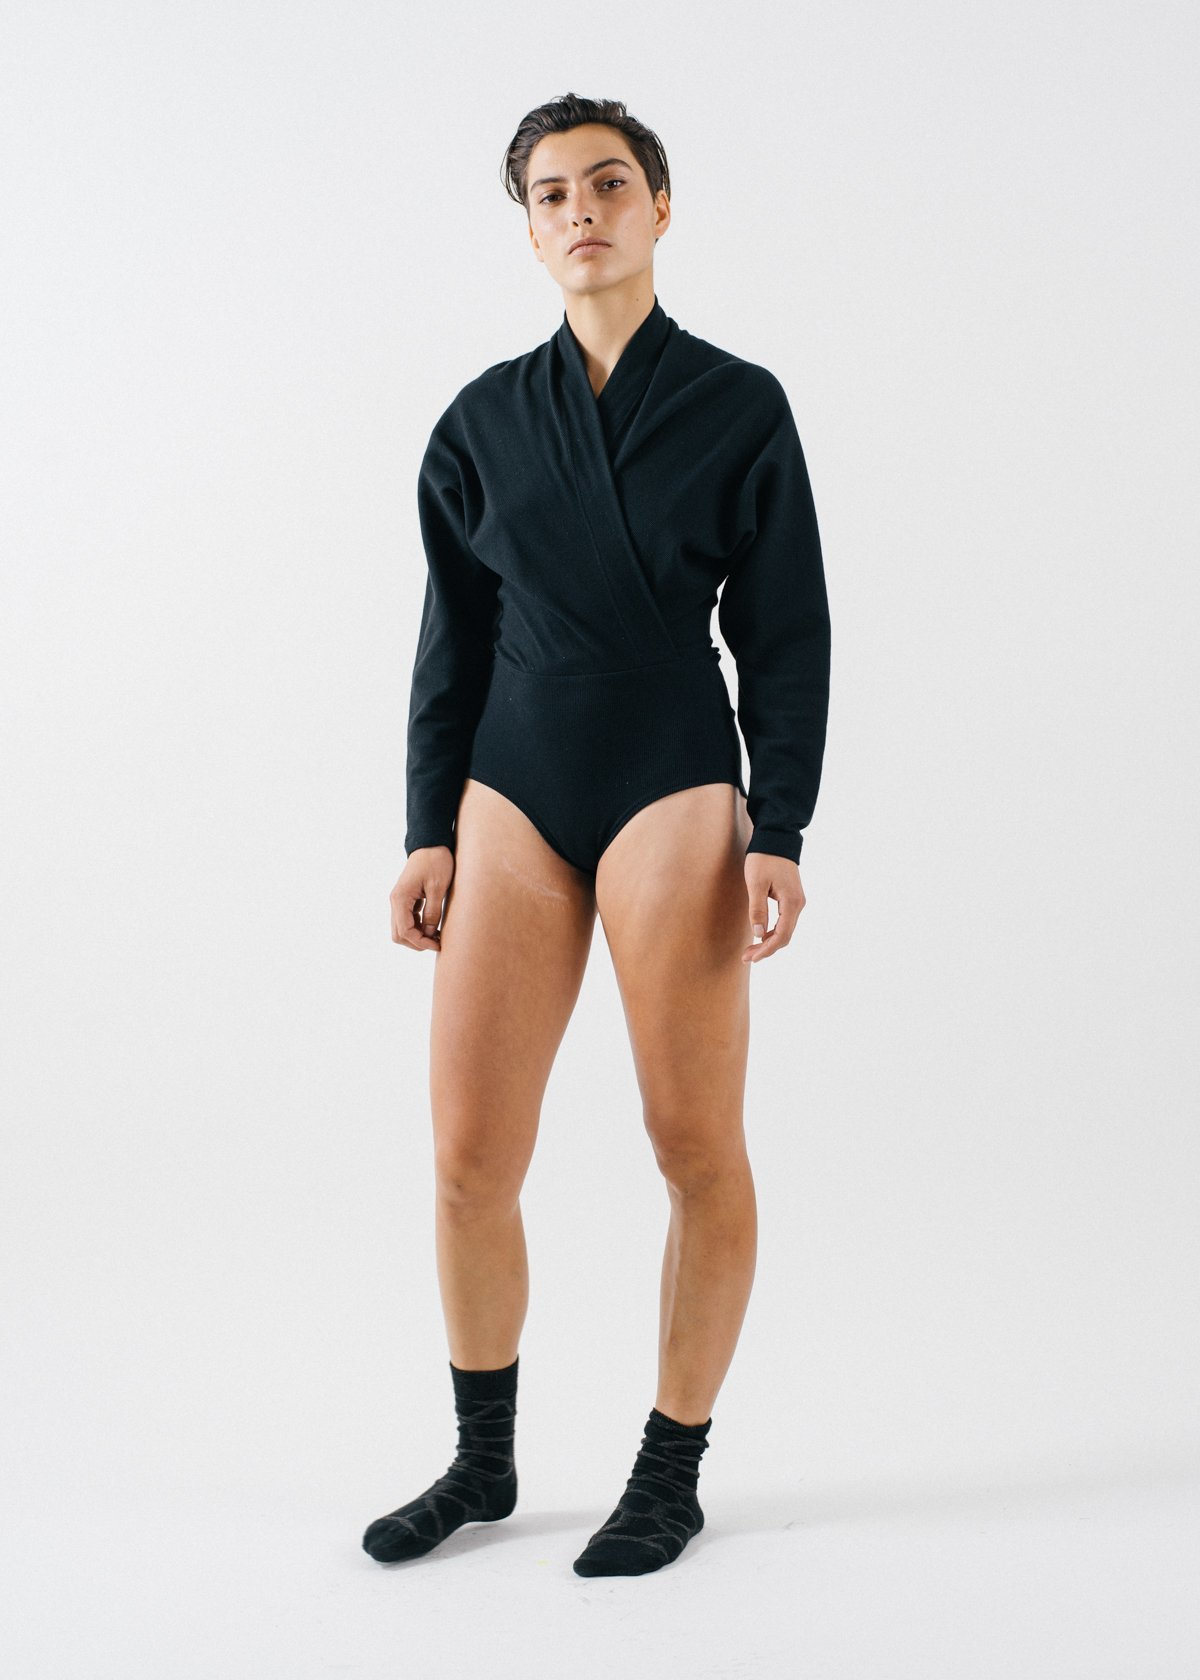 6e427e03a442 REIFhaus Nori Rib Knit Long Sleeve Bodysuit - Black | Garmentory